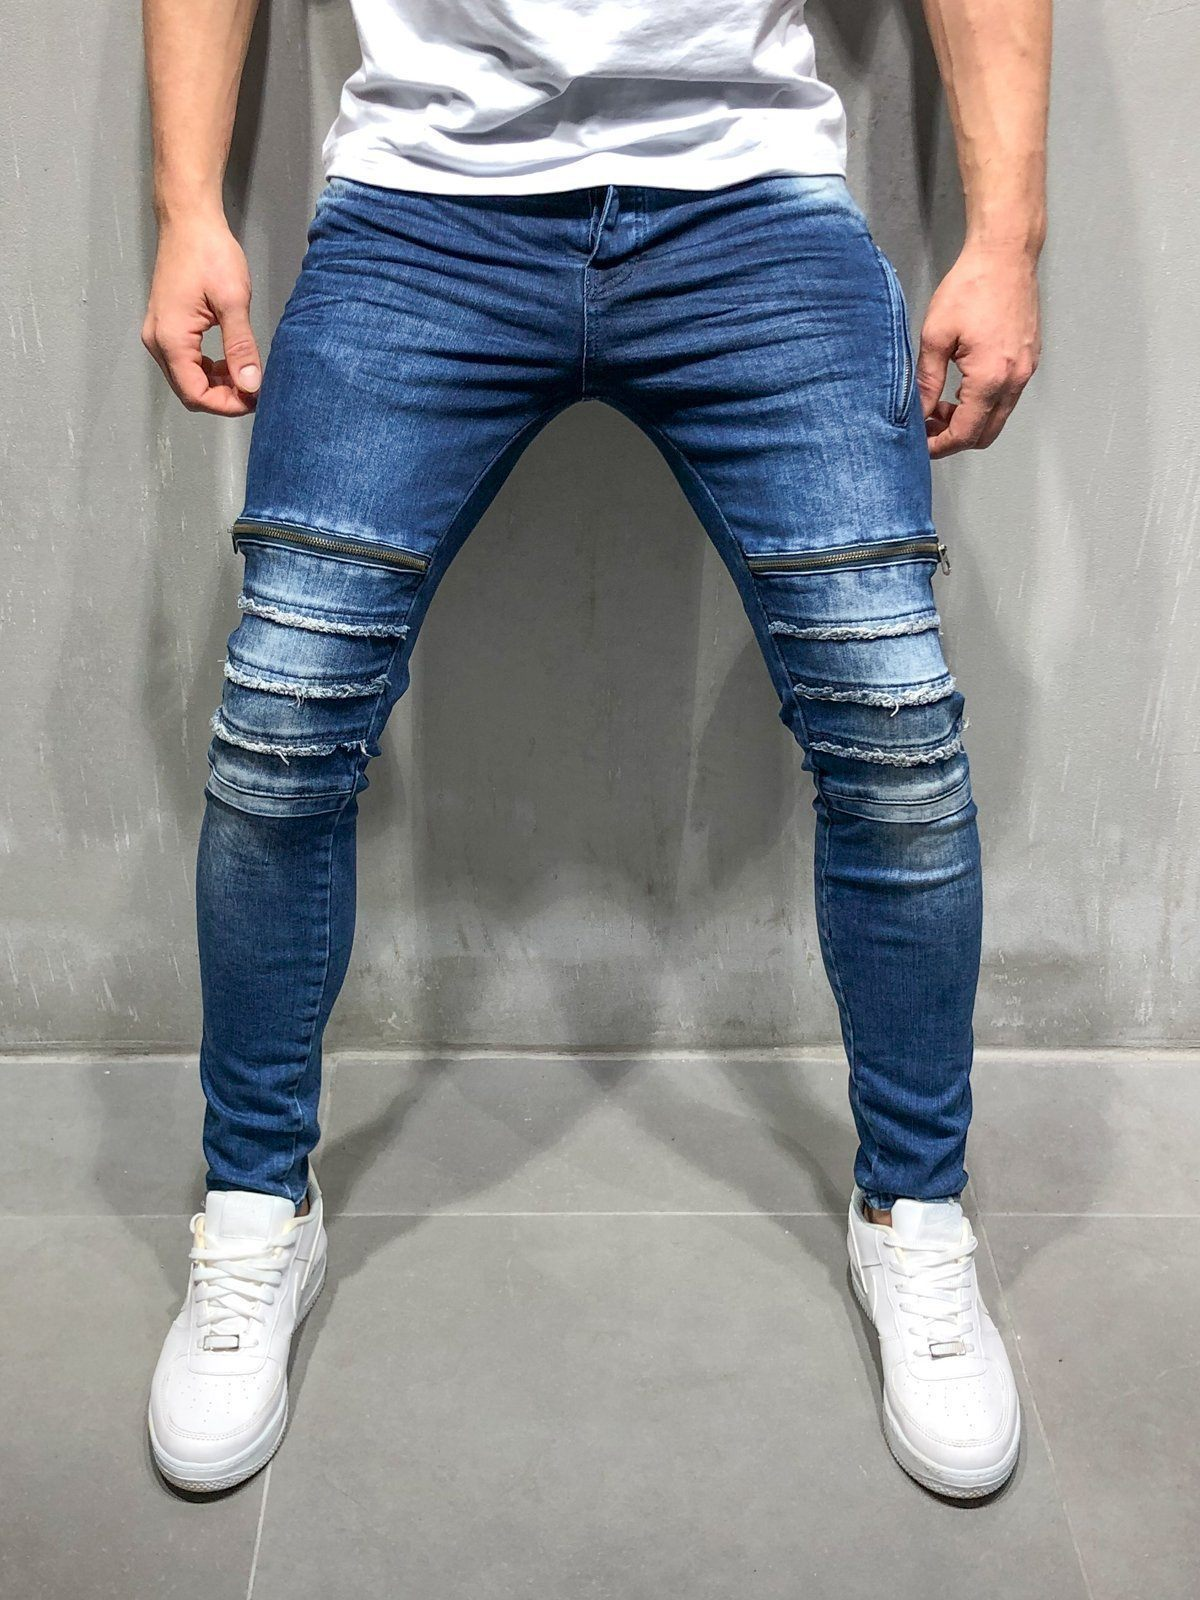 Distressed Jeans Zipper Detail Blue Ripped Jeans Style Types Of Jeans Ripped Jeans